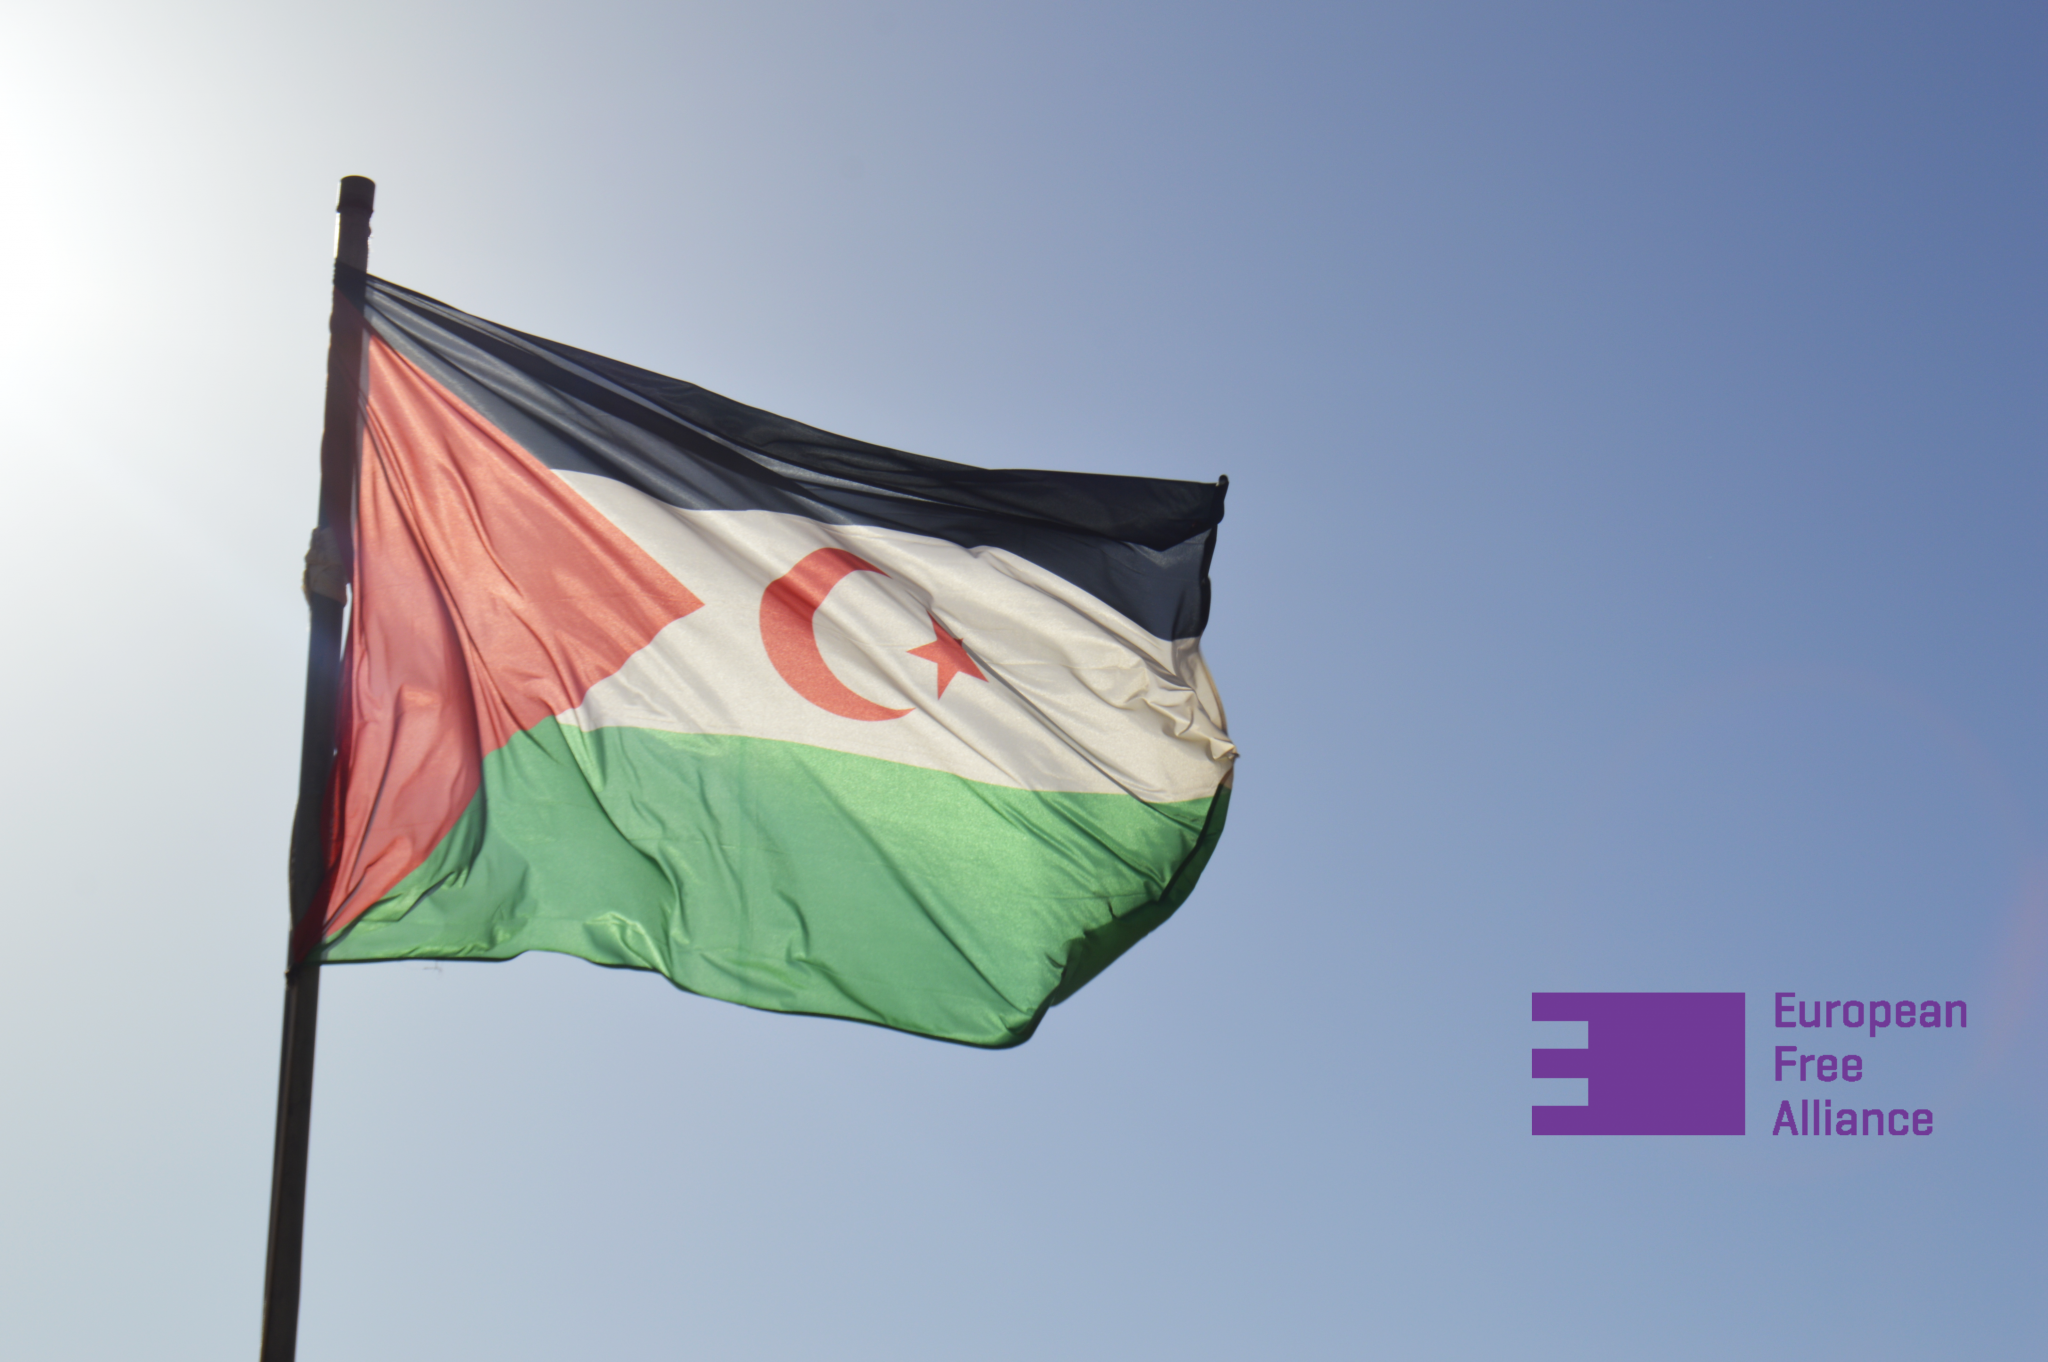 EFA calls for an immediate referendum on the self-determination for Western Sahara